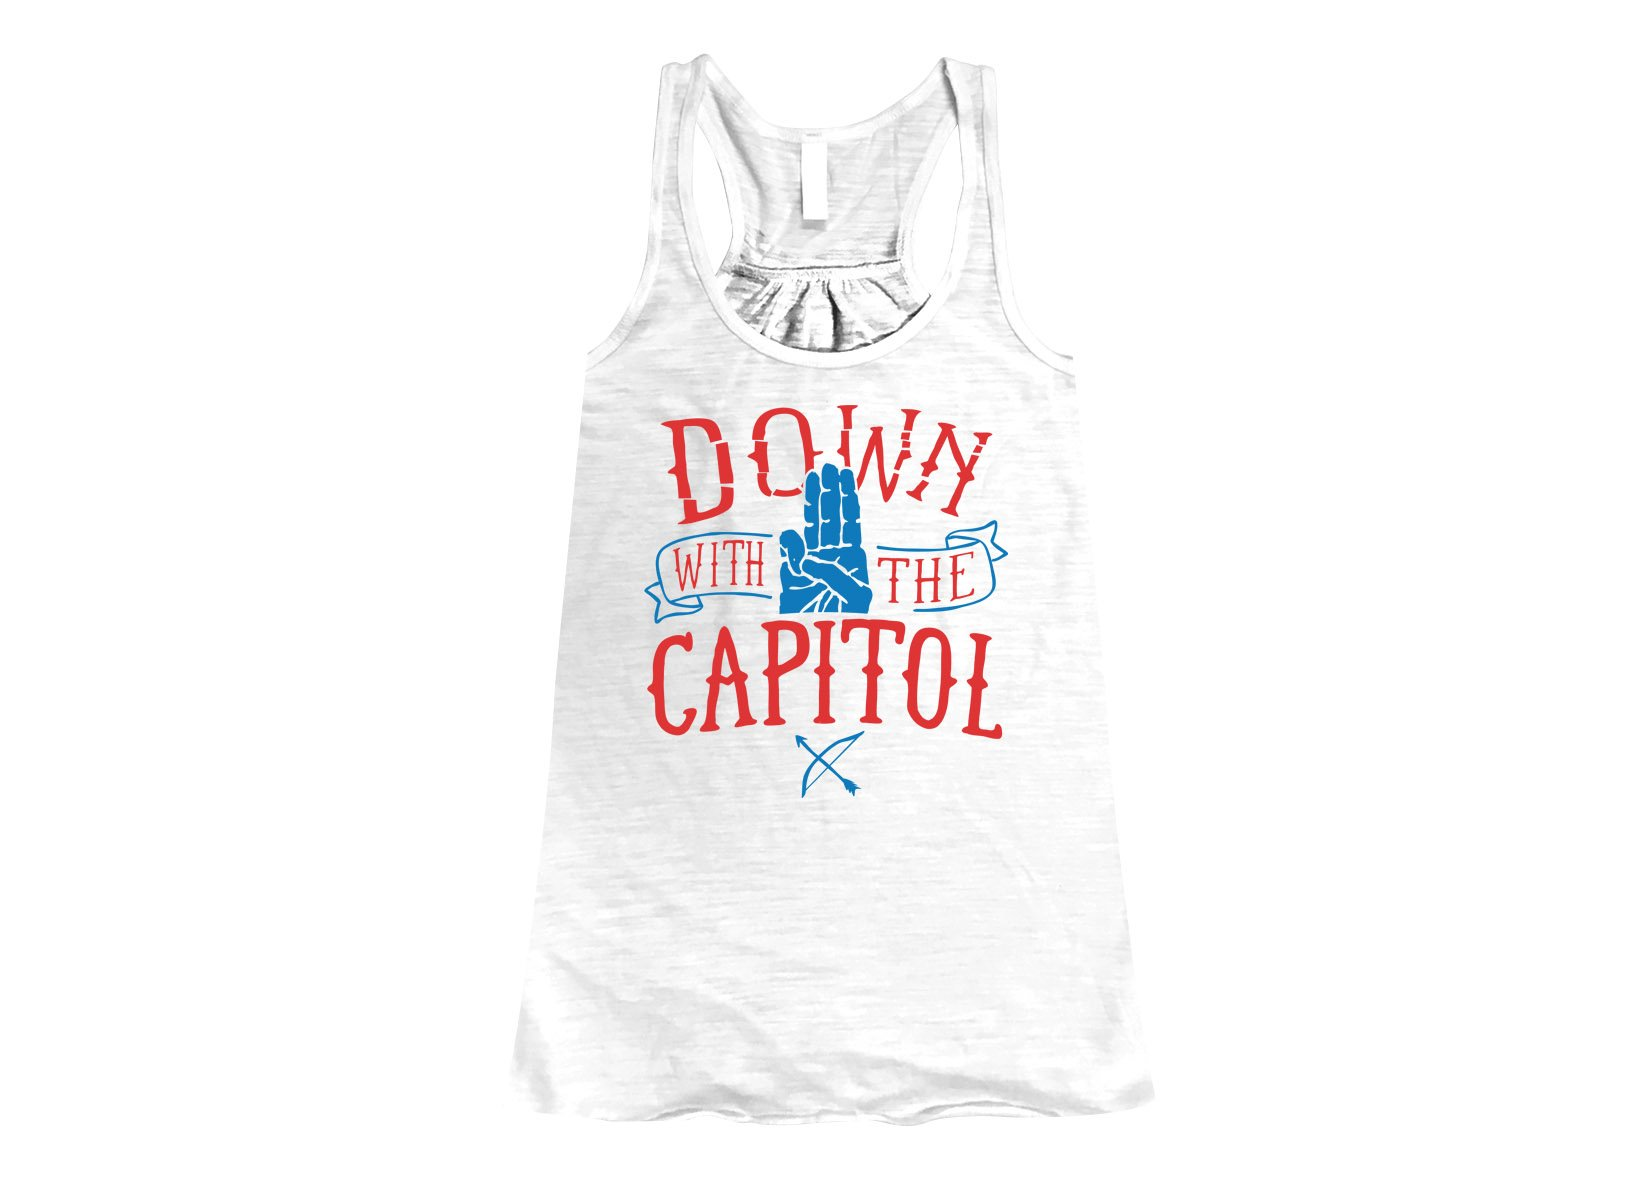 Down With The Capitol on Womens Tanks T-Shirt